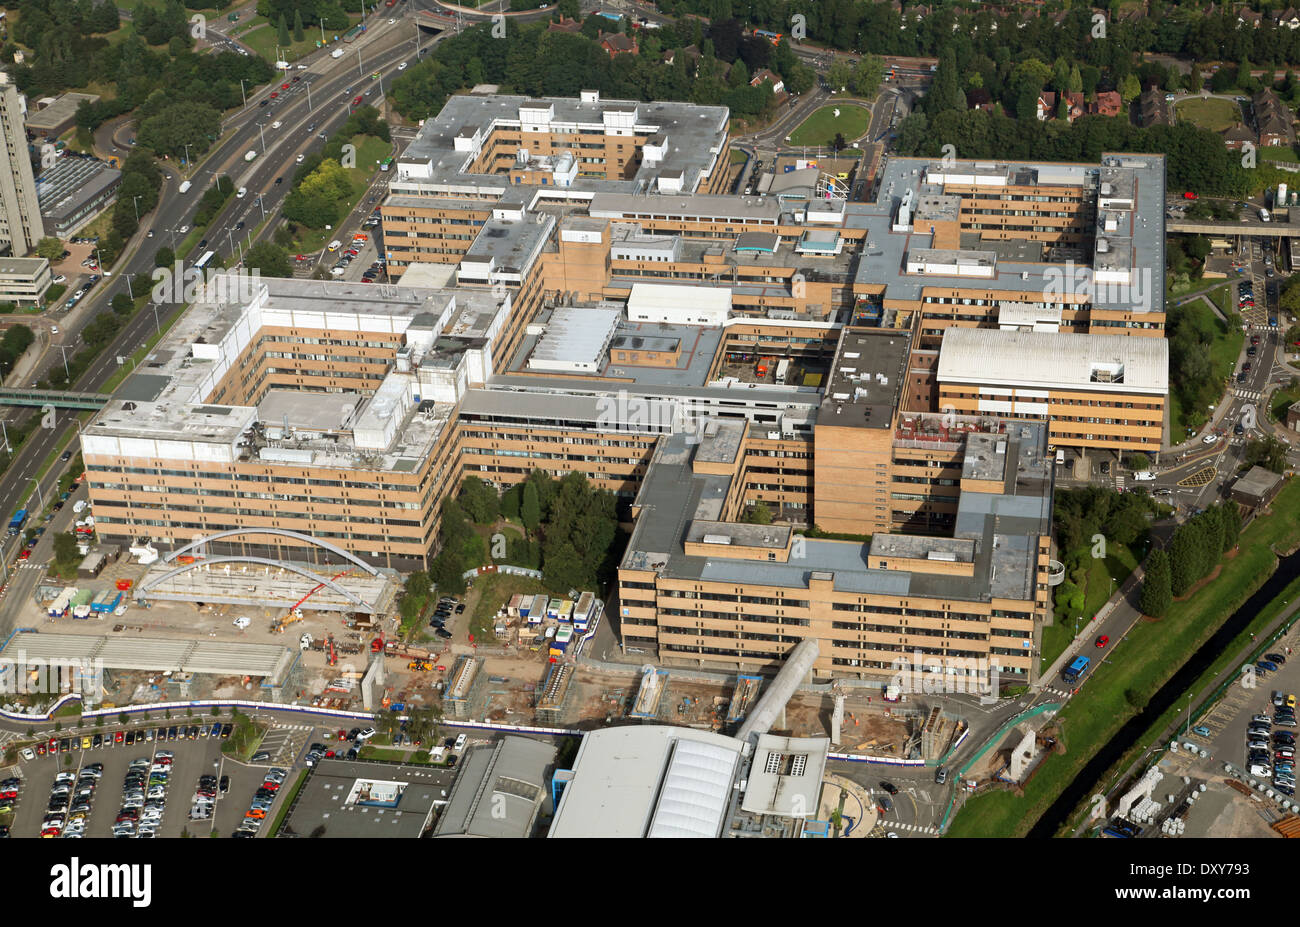 aerial view of The Queens Medical Centre at The University of Nottingham - Stock Image